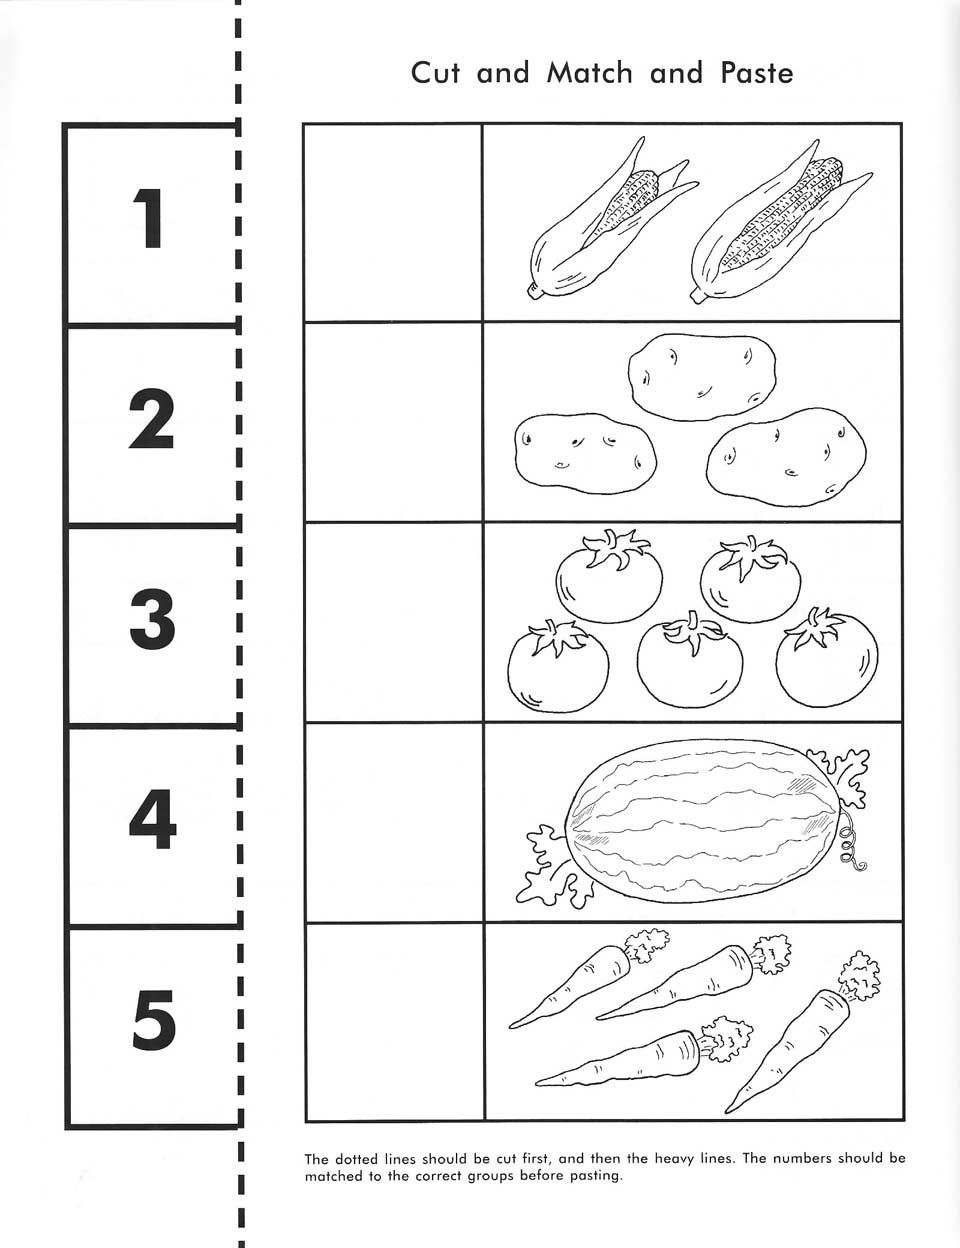 Workbooks superhero worksheets for preschool : Cut, count, match and paste / Free printable | Pre-K Math ...